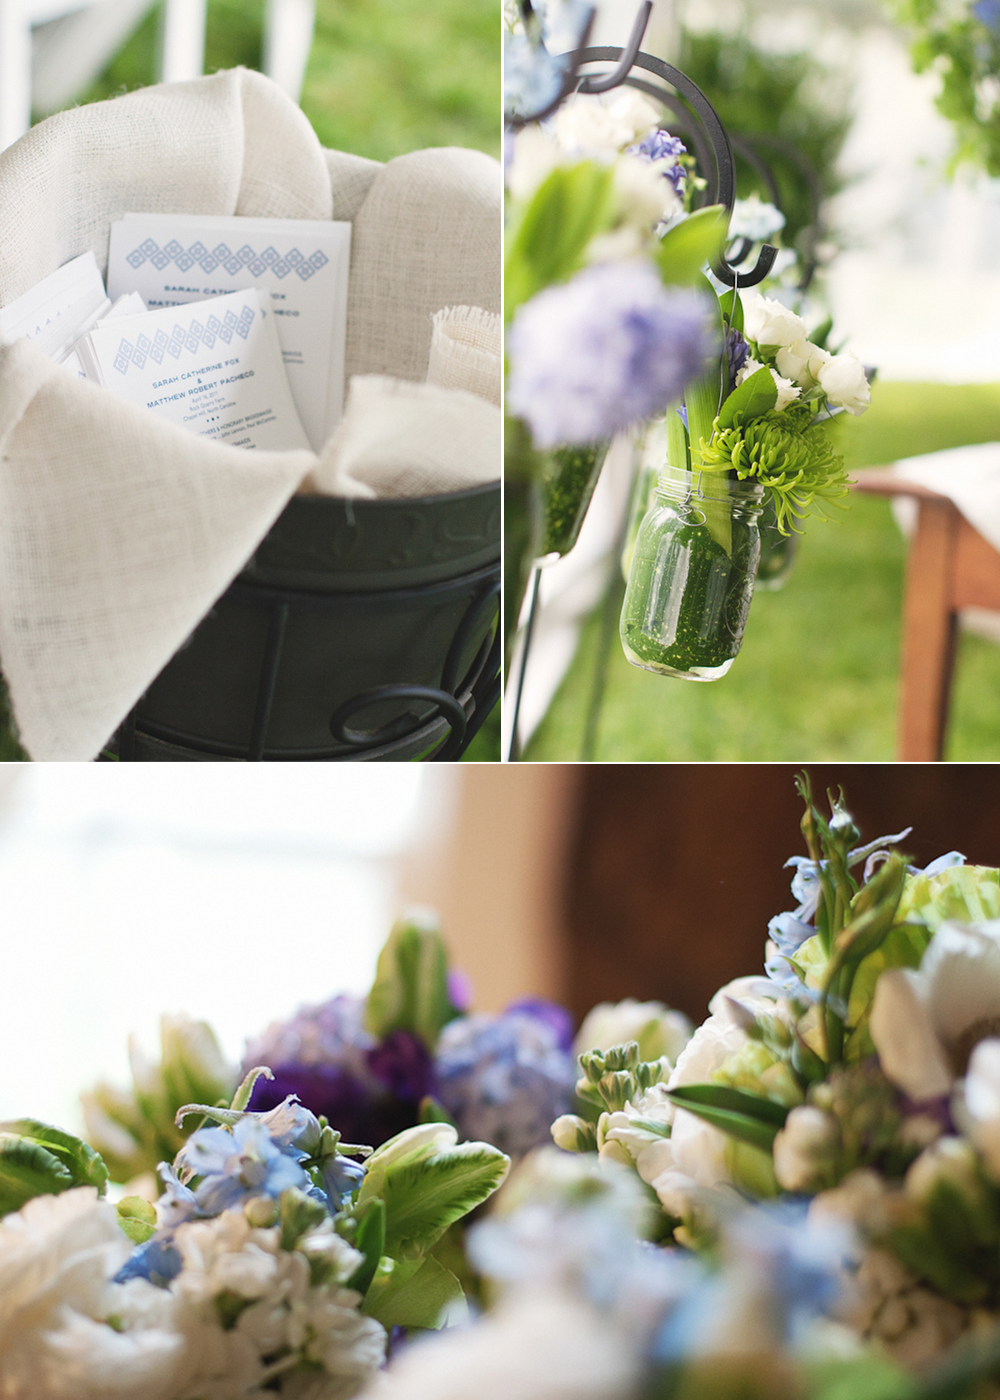 Wedding-flower-ideas-inspiration-rustic-chic-real-wedding-outdoor-venue.original